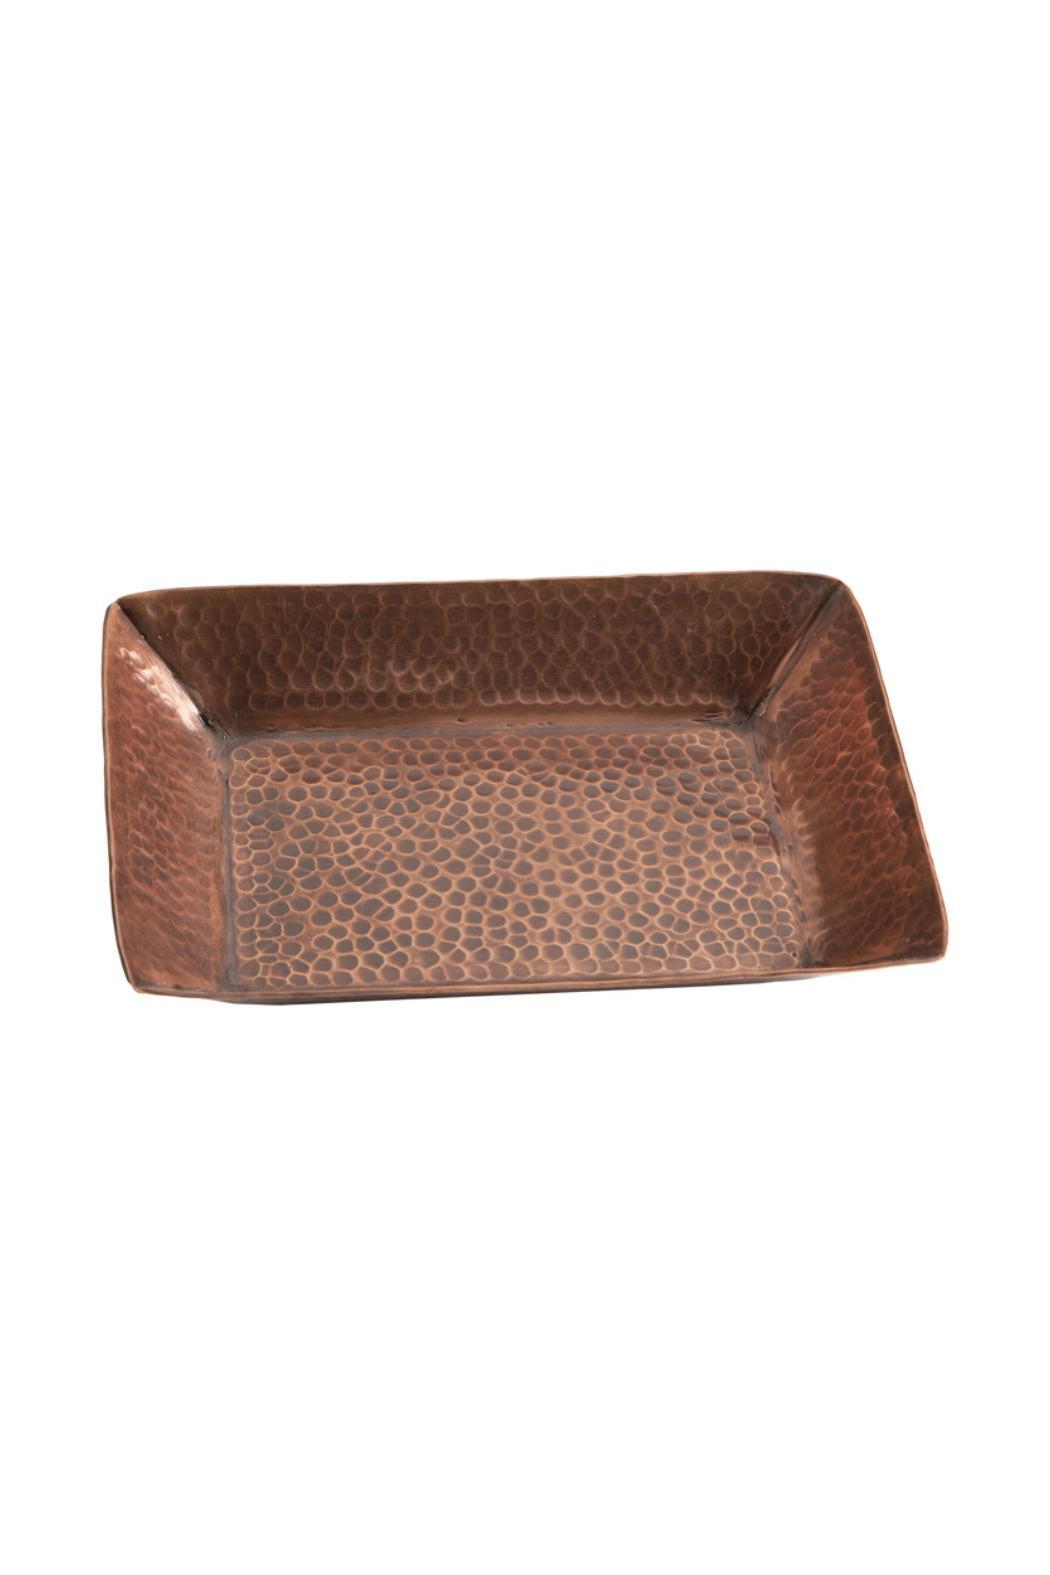 Tag Hammered Copper Tray - Main Image